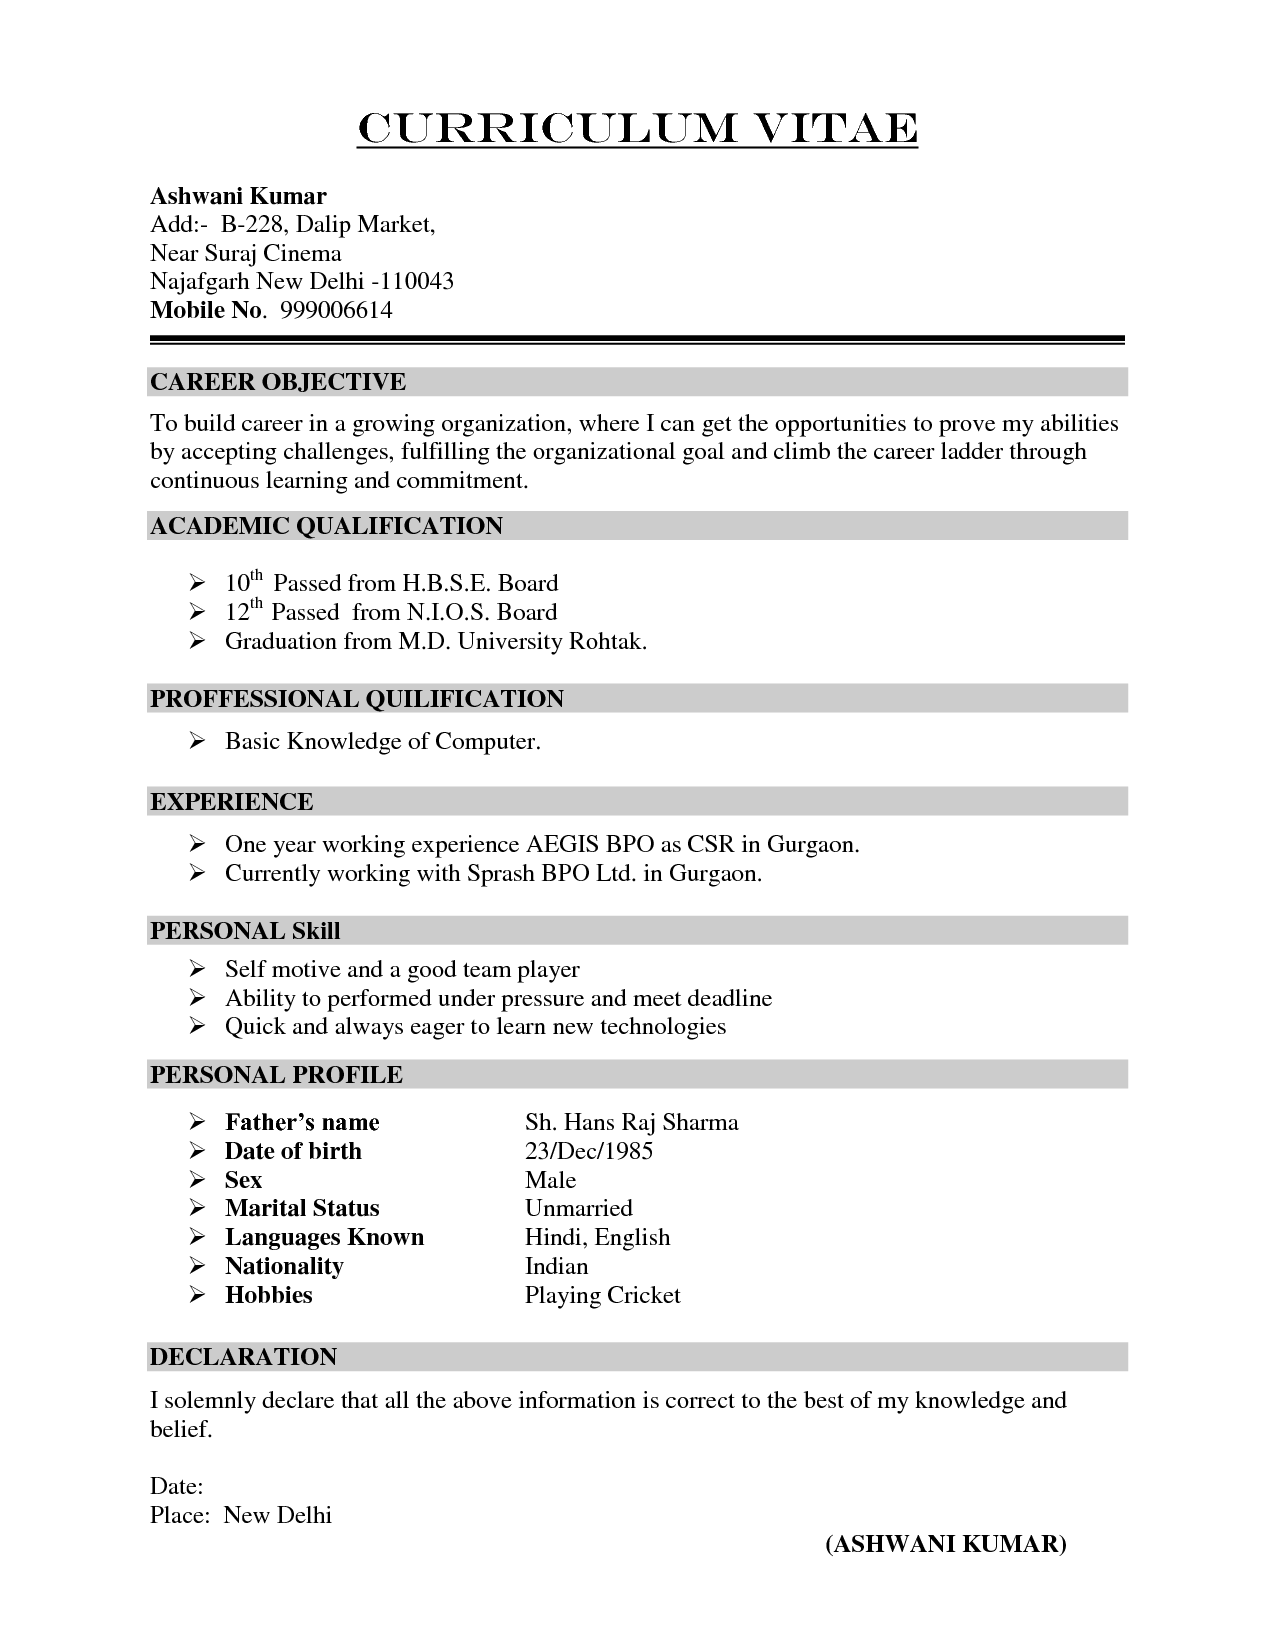 cvs resume example cvs 03052017 - Cvs Resume Example